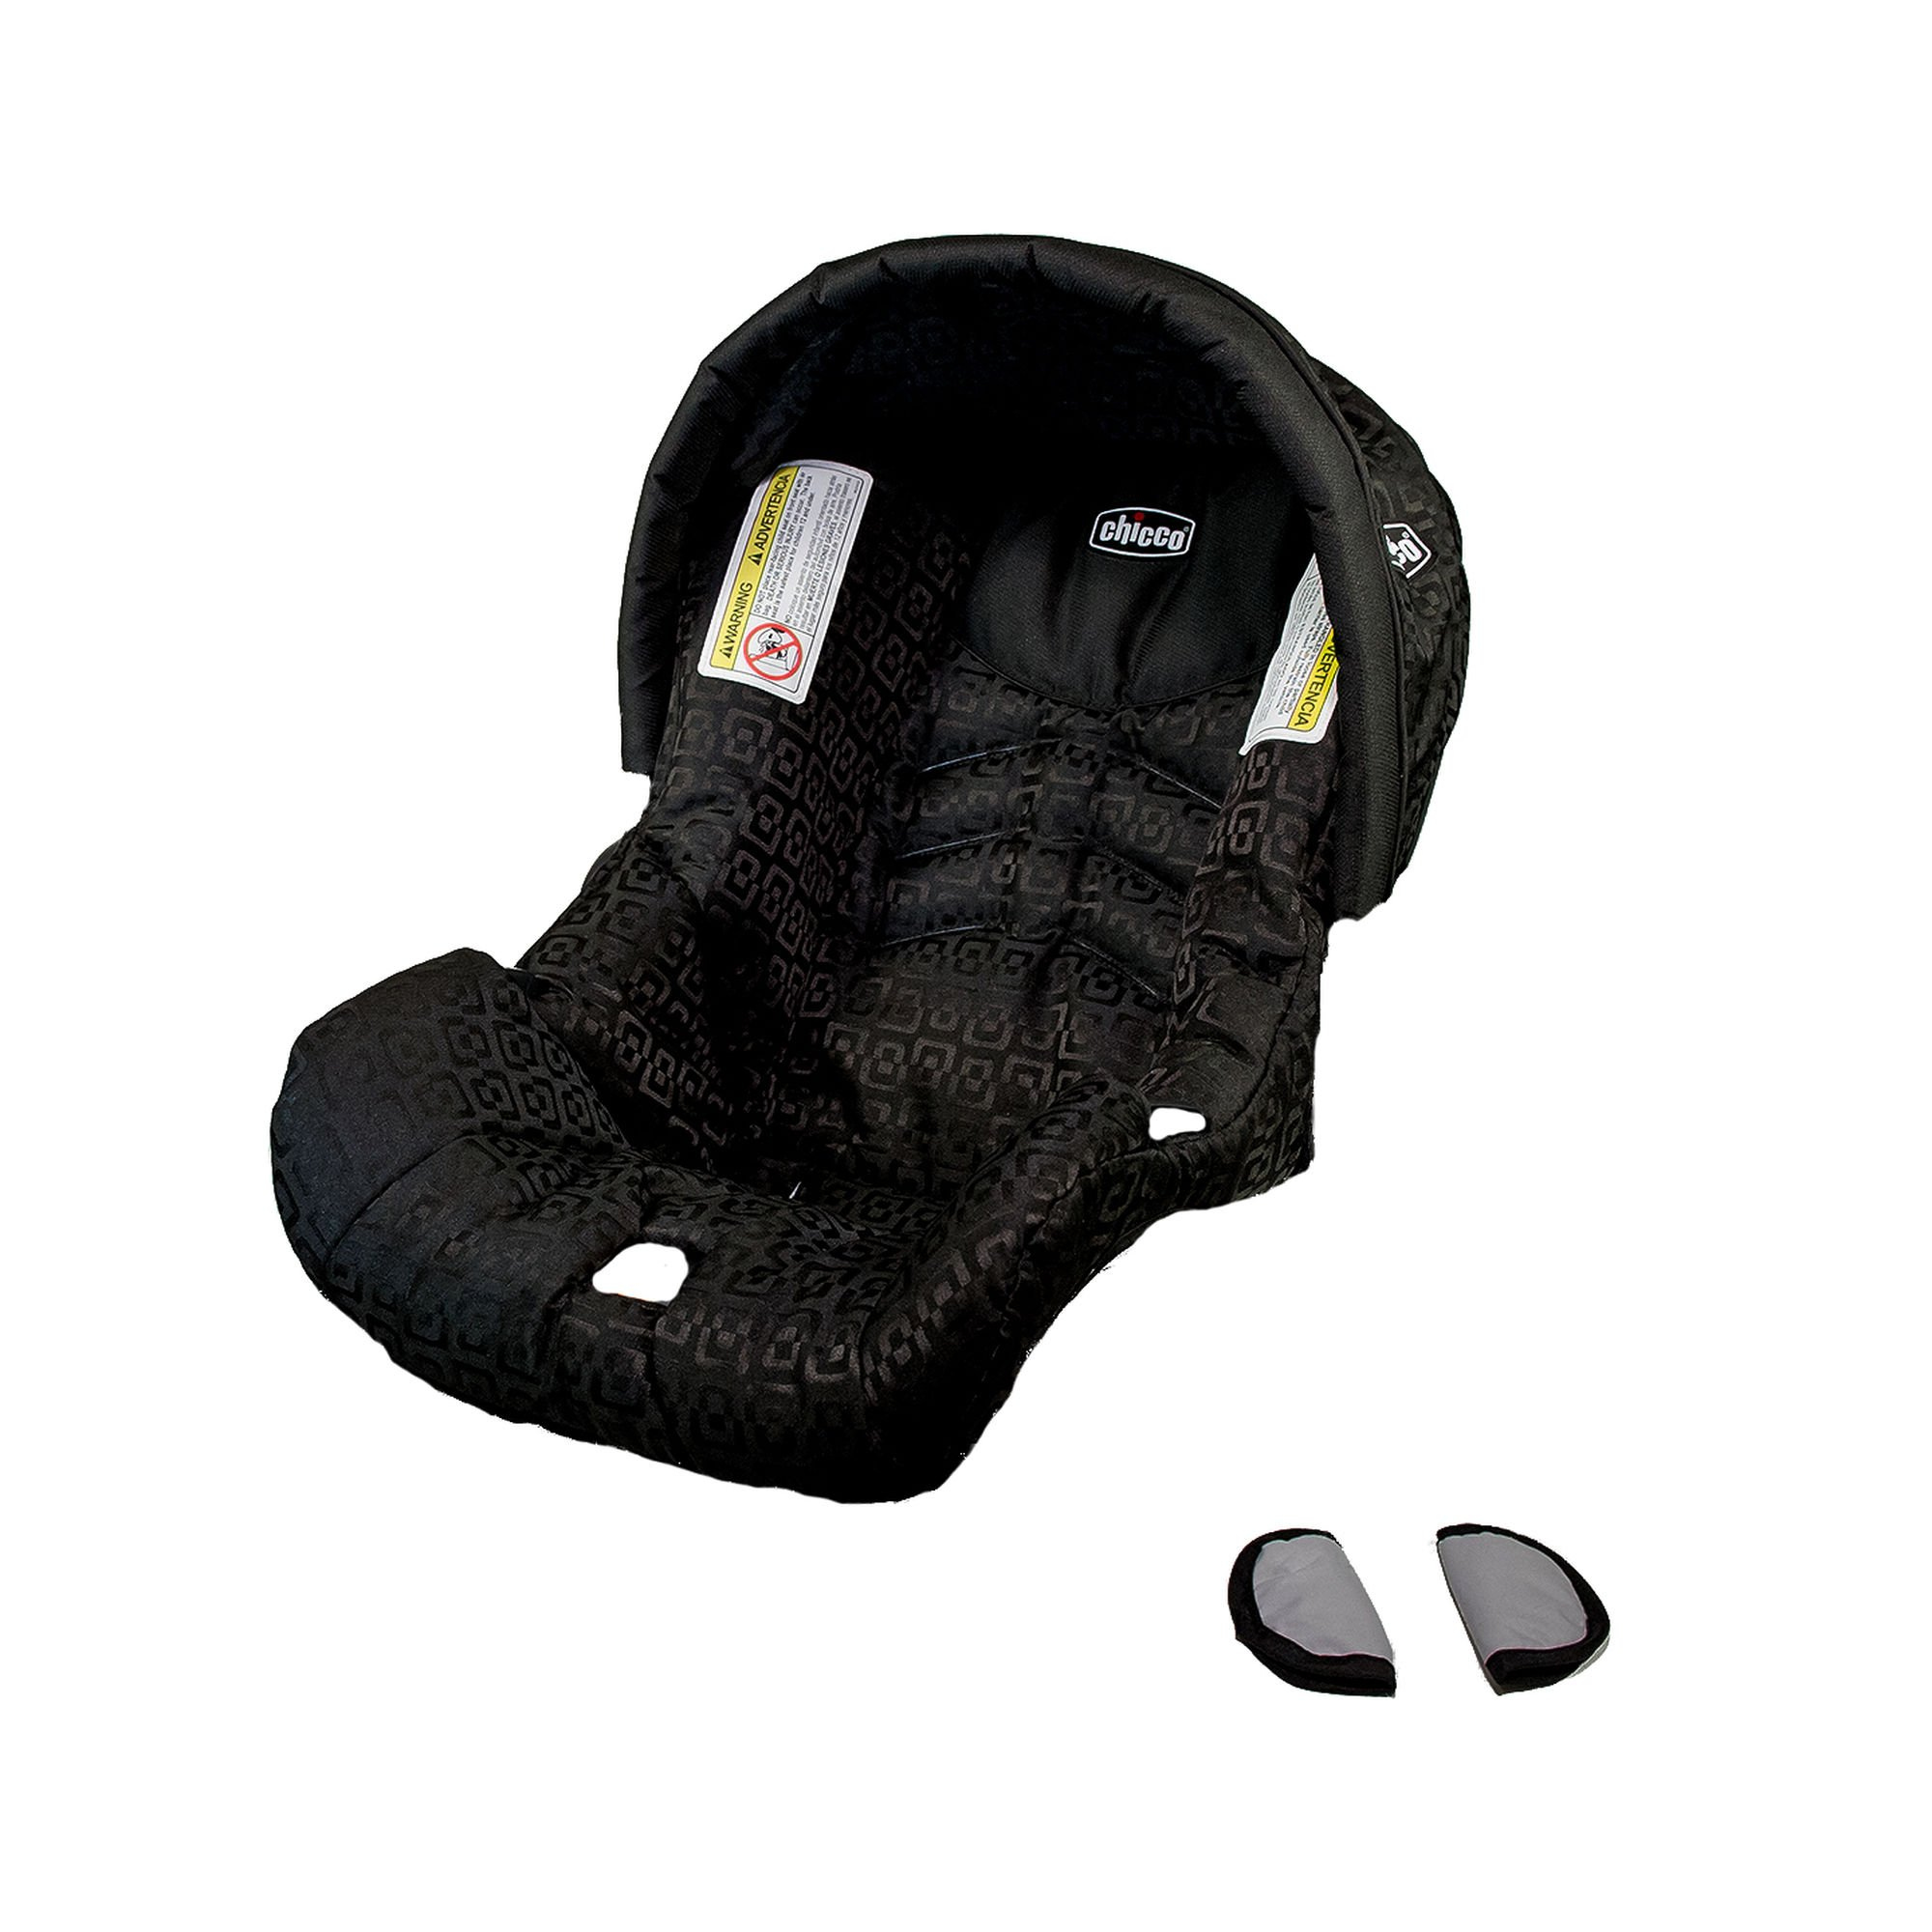 Replacement Chicco KeyFit Car Seat Cover, Canopy, and Shoulder Pads - Ombra